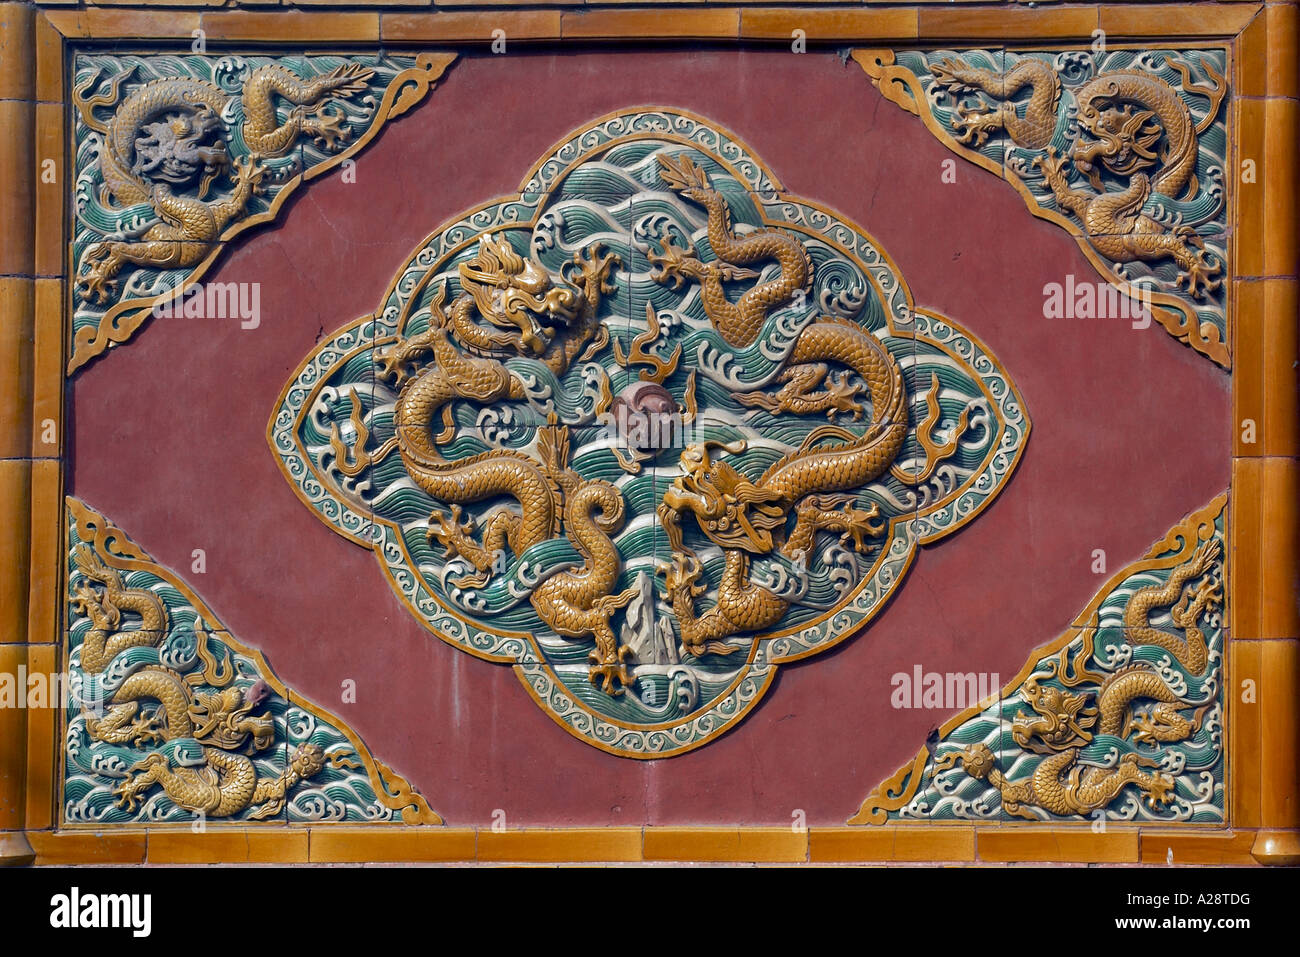 Decorative tiles in the King of Heaven Hall at Beihai Gongyuan in Beijing China - Stock Image